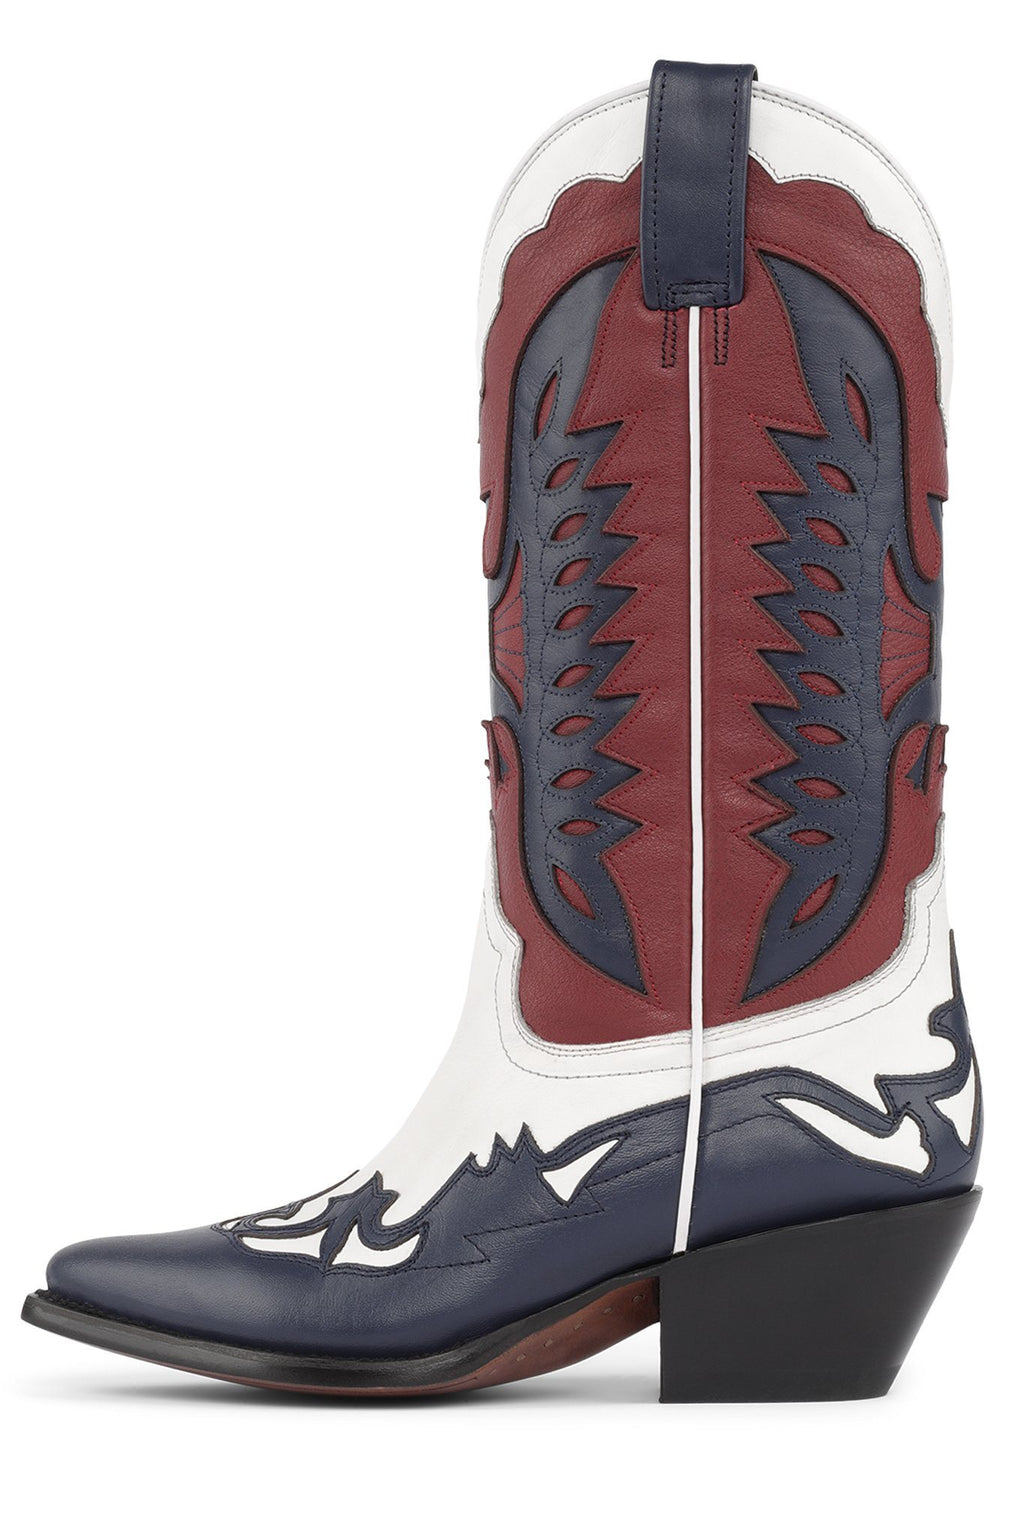 EL-PHOENIX Mid-Calf Boot Jeffrey Campbell Red White Blue 6